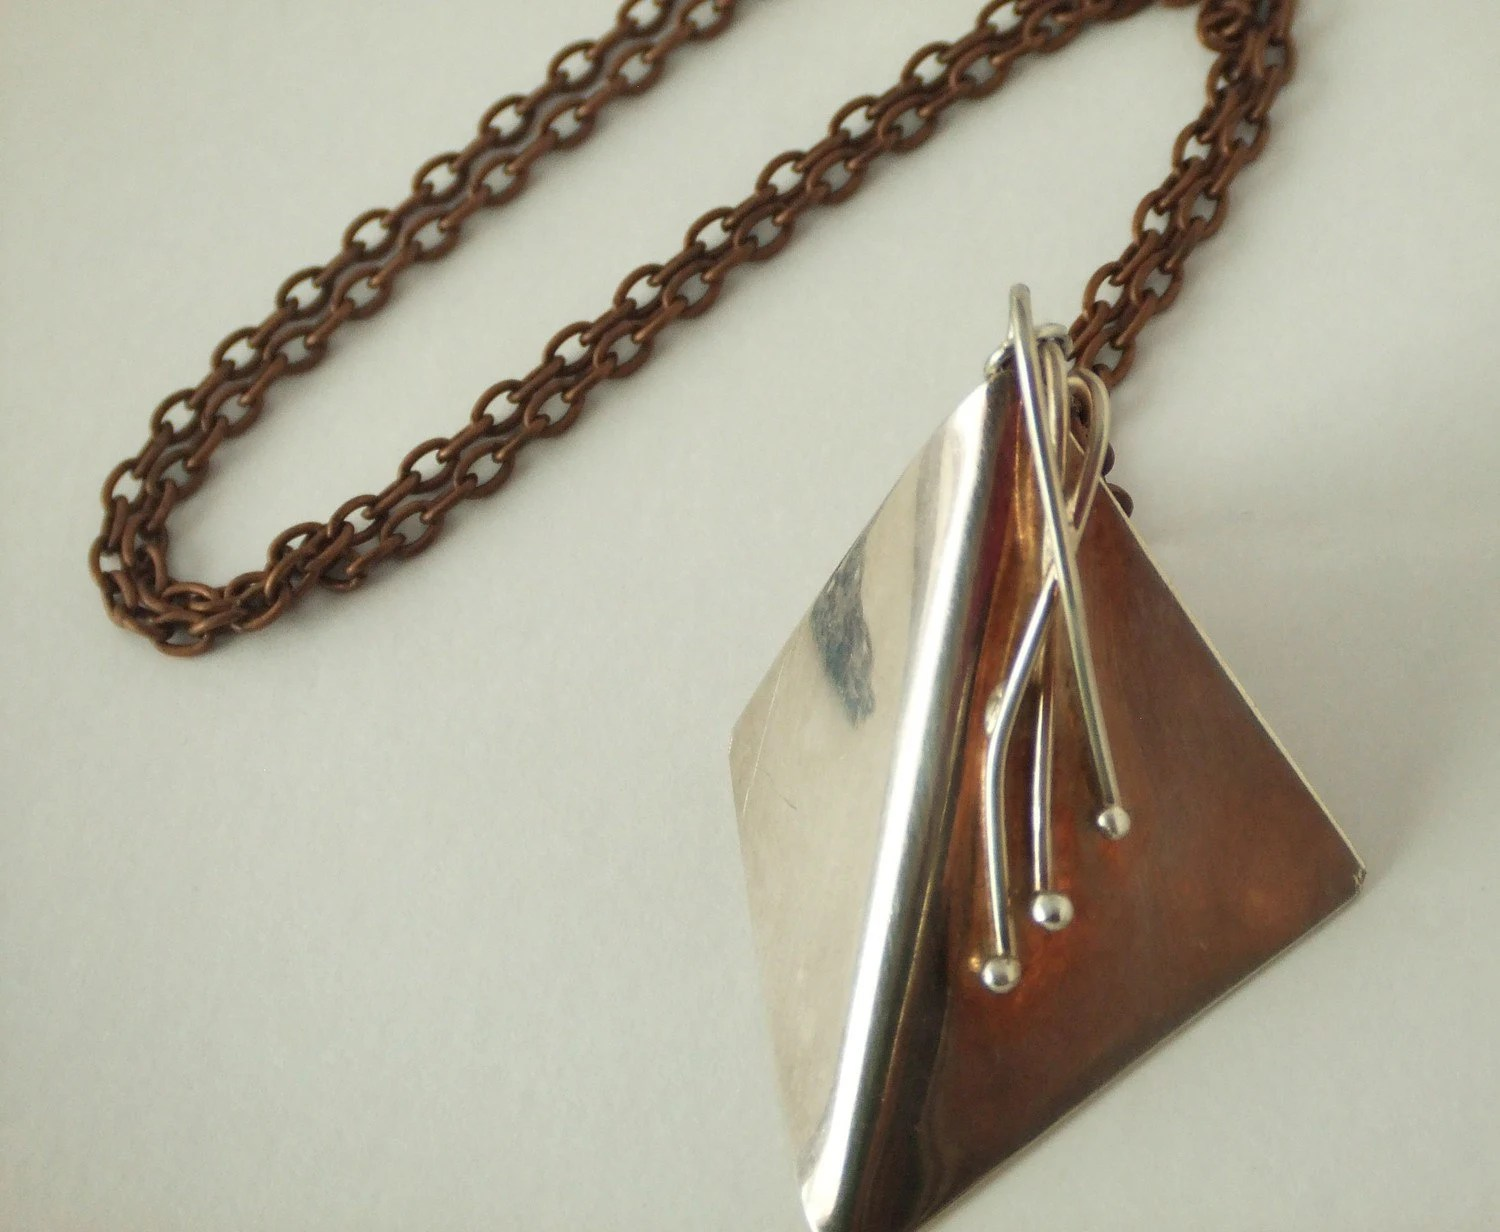 Vintage Look Copper Necklace with Sterling Silver Square Pendant